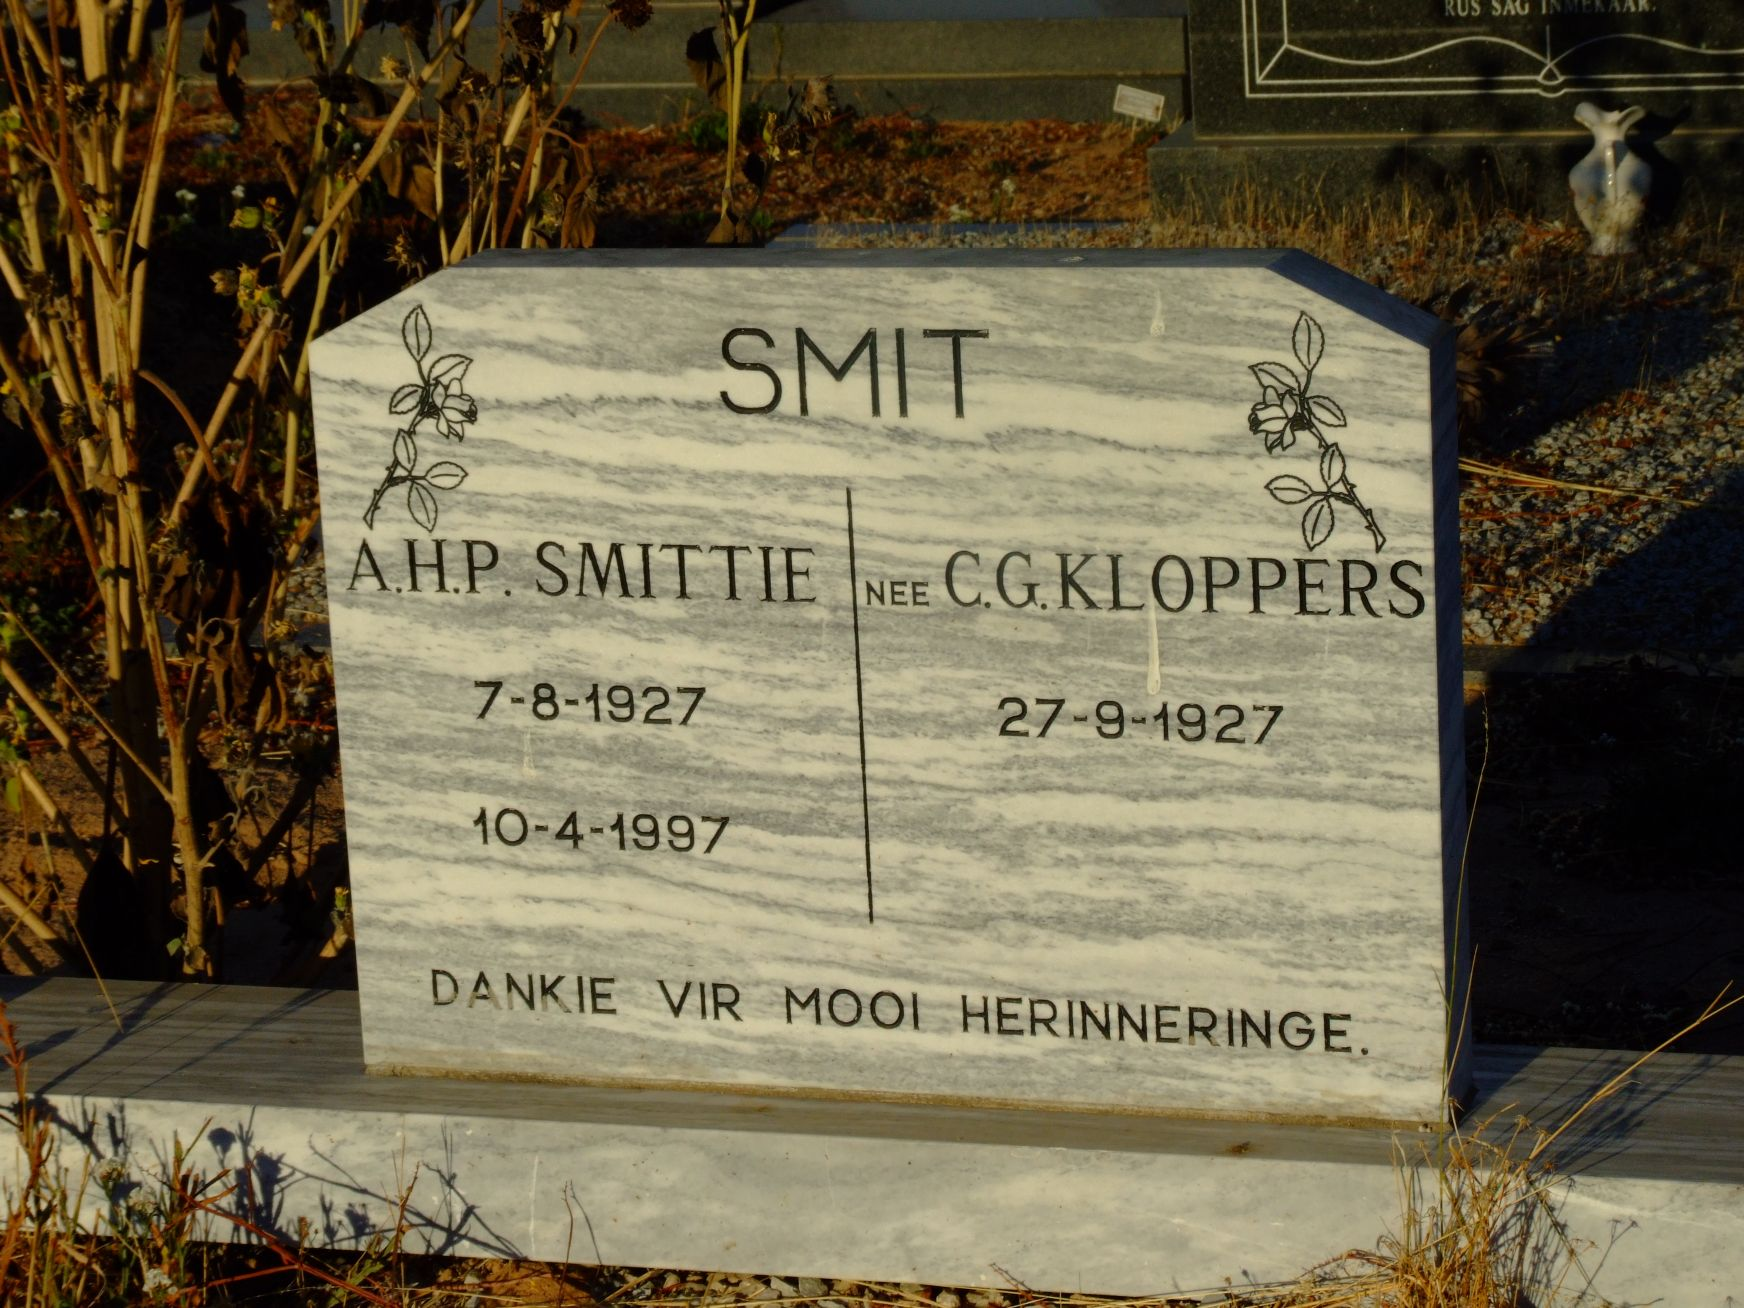 Smit A H P (Smittie) and C G Kloppers